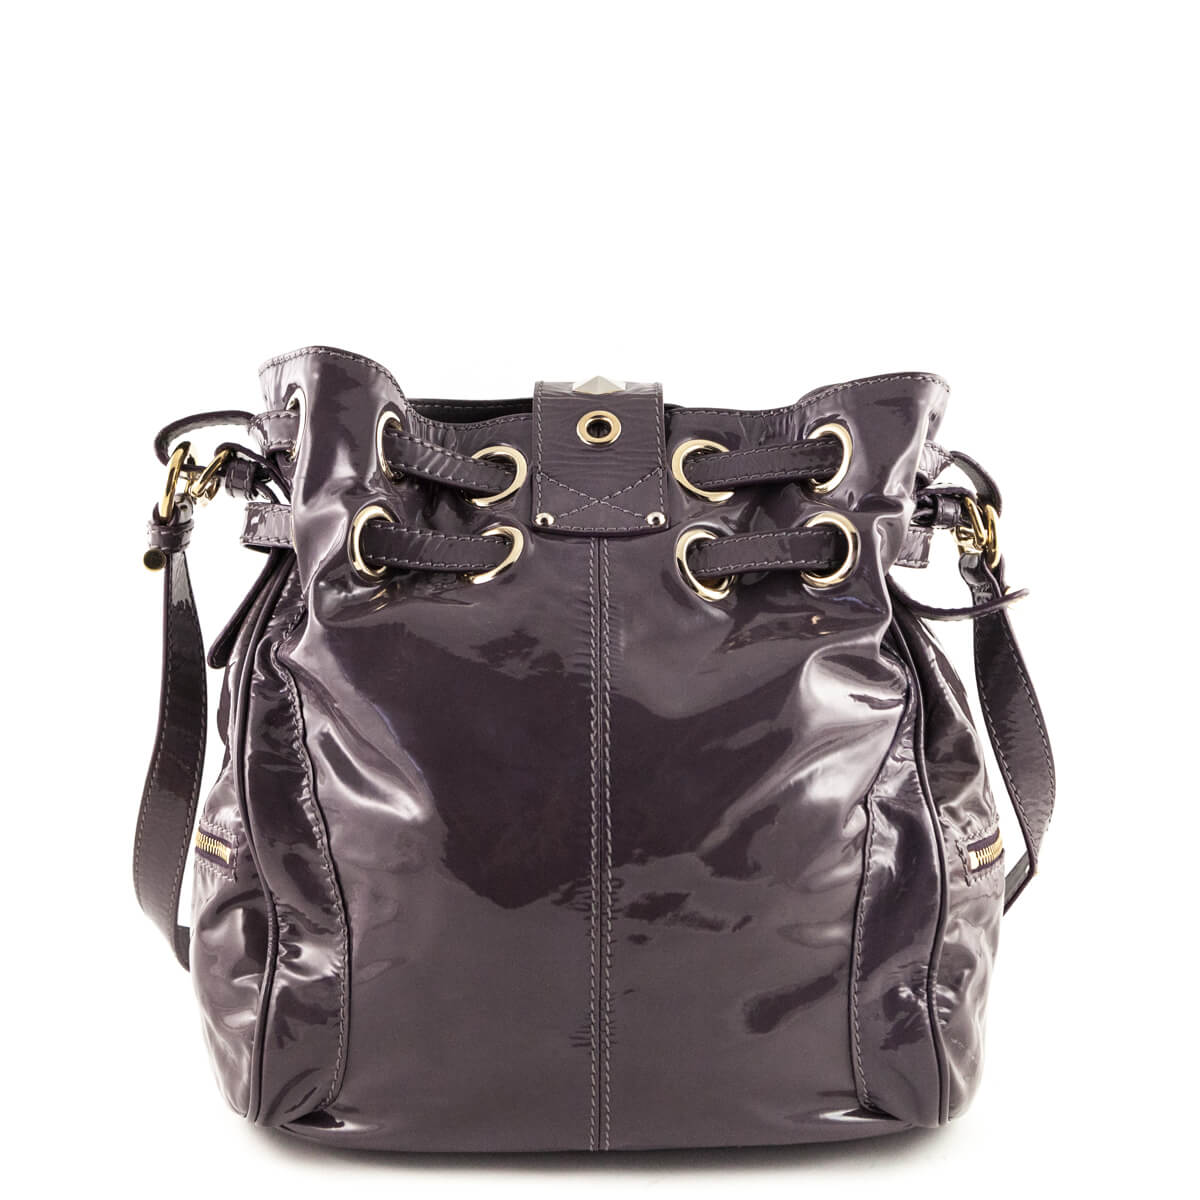 fd44c90fa7a ... Jimmy Choo Lilac Patent Leather Ramona Bag - LOVE that BAG - Preowned  Authentic Designer Handbags ...